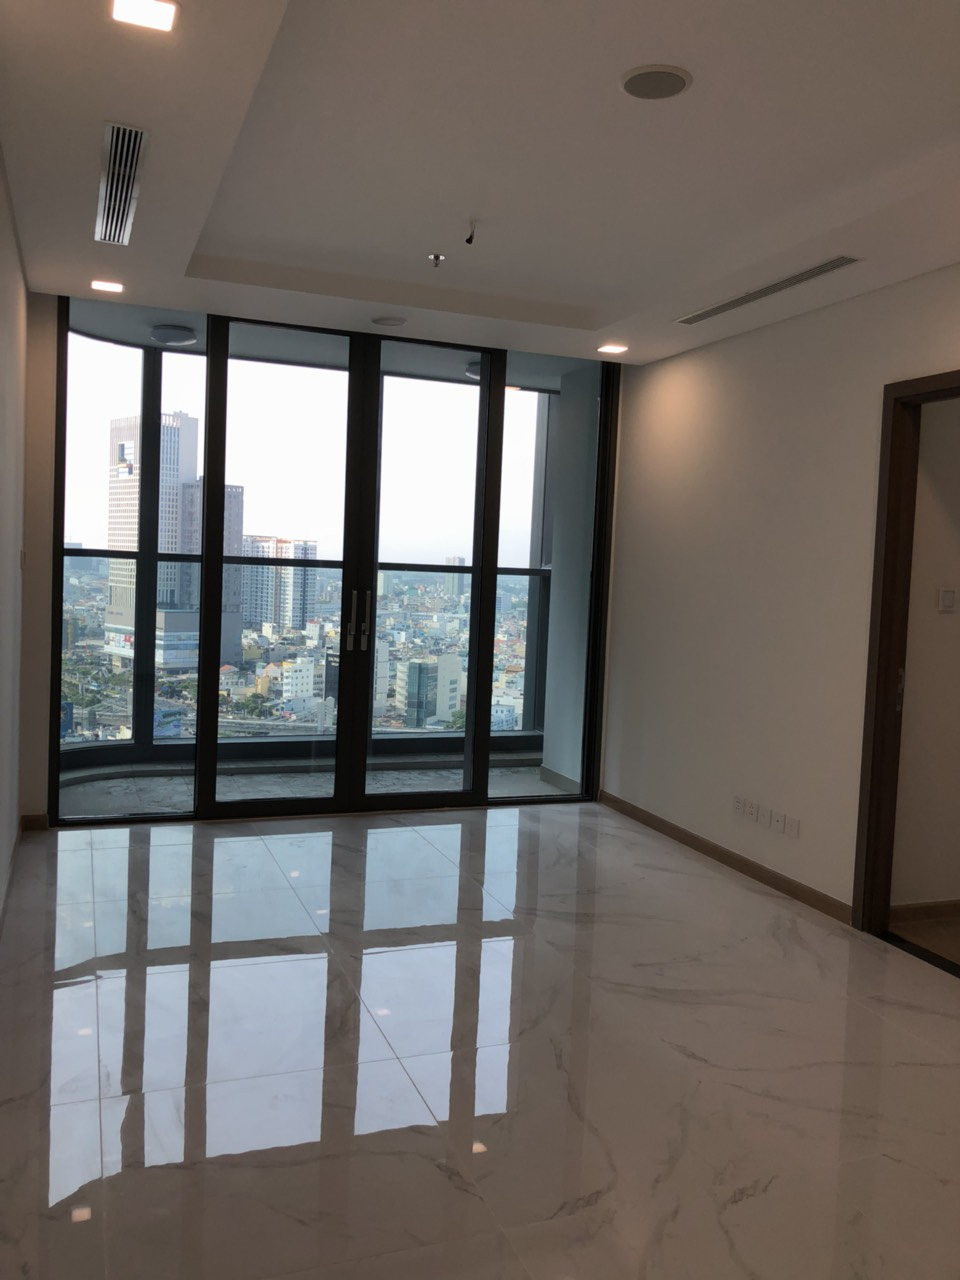 Apartment for rent BT105L5202 (13)